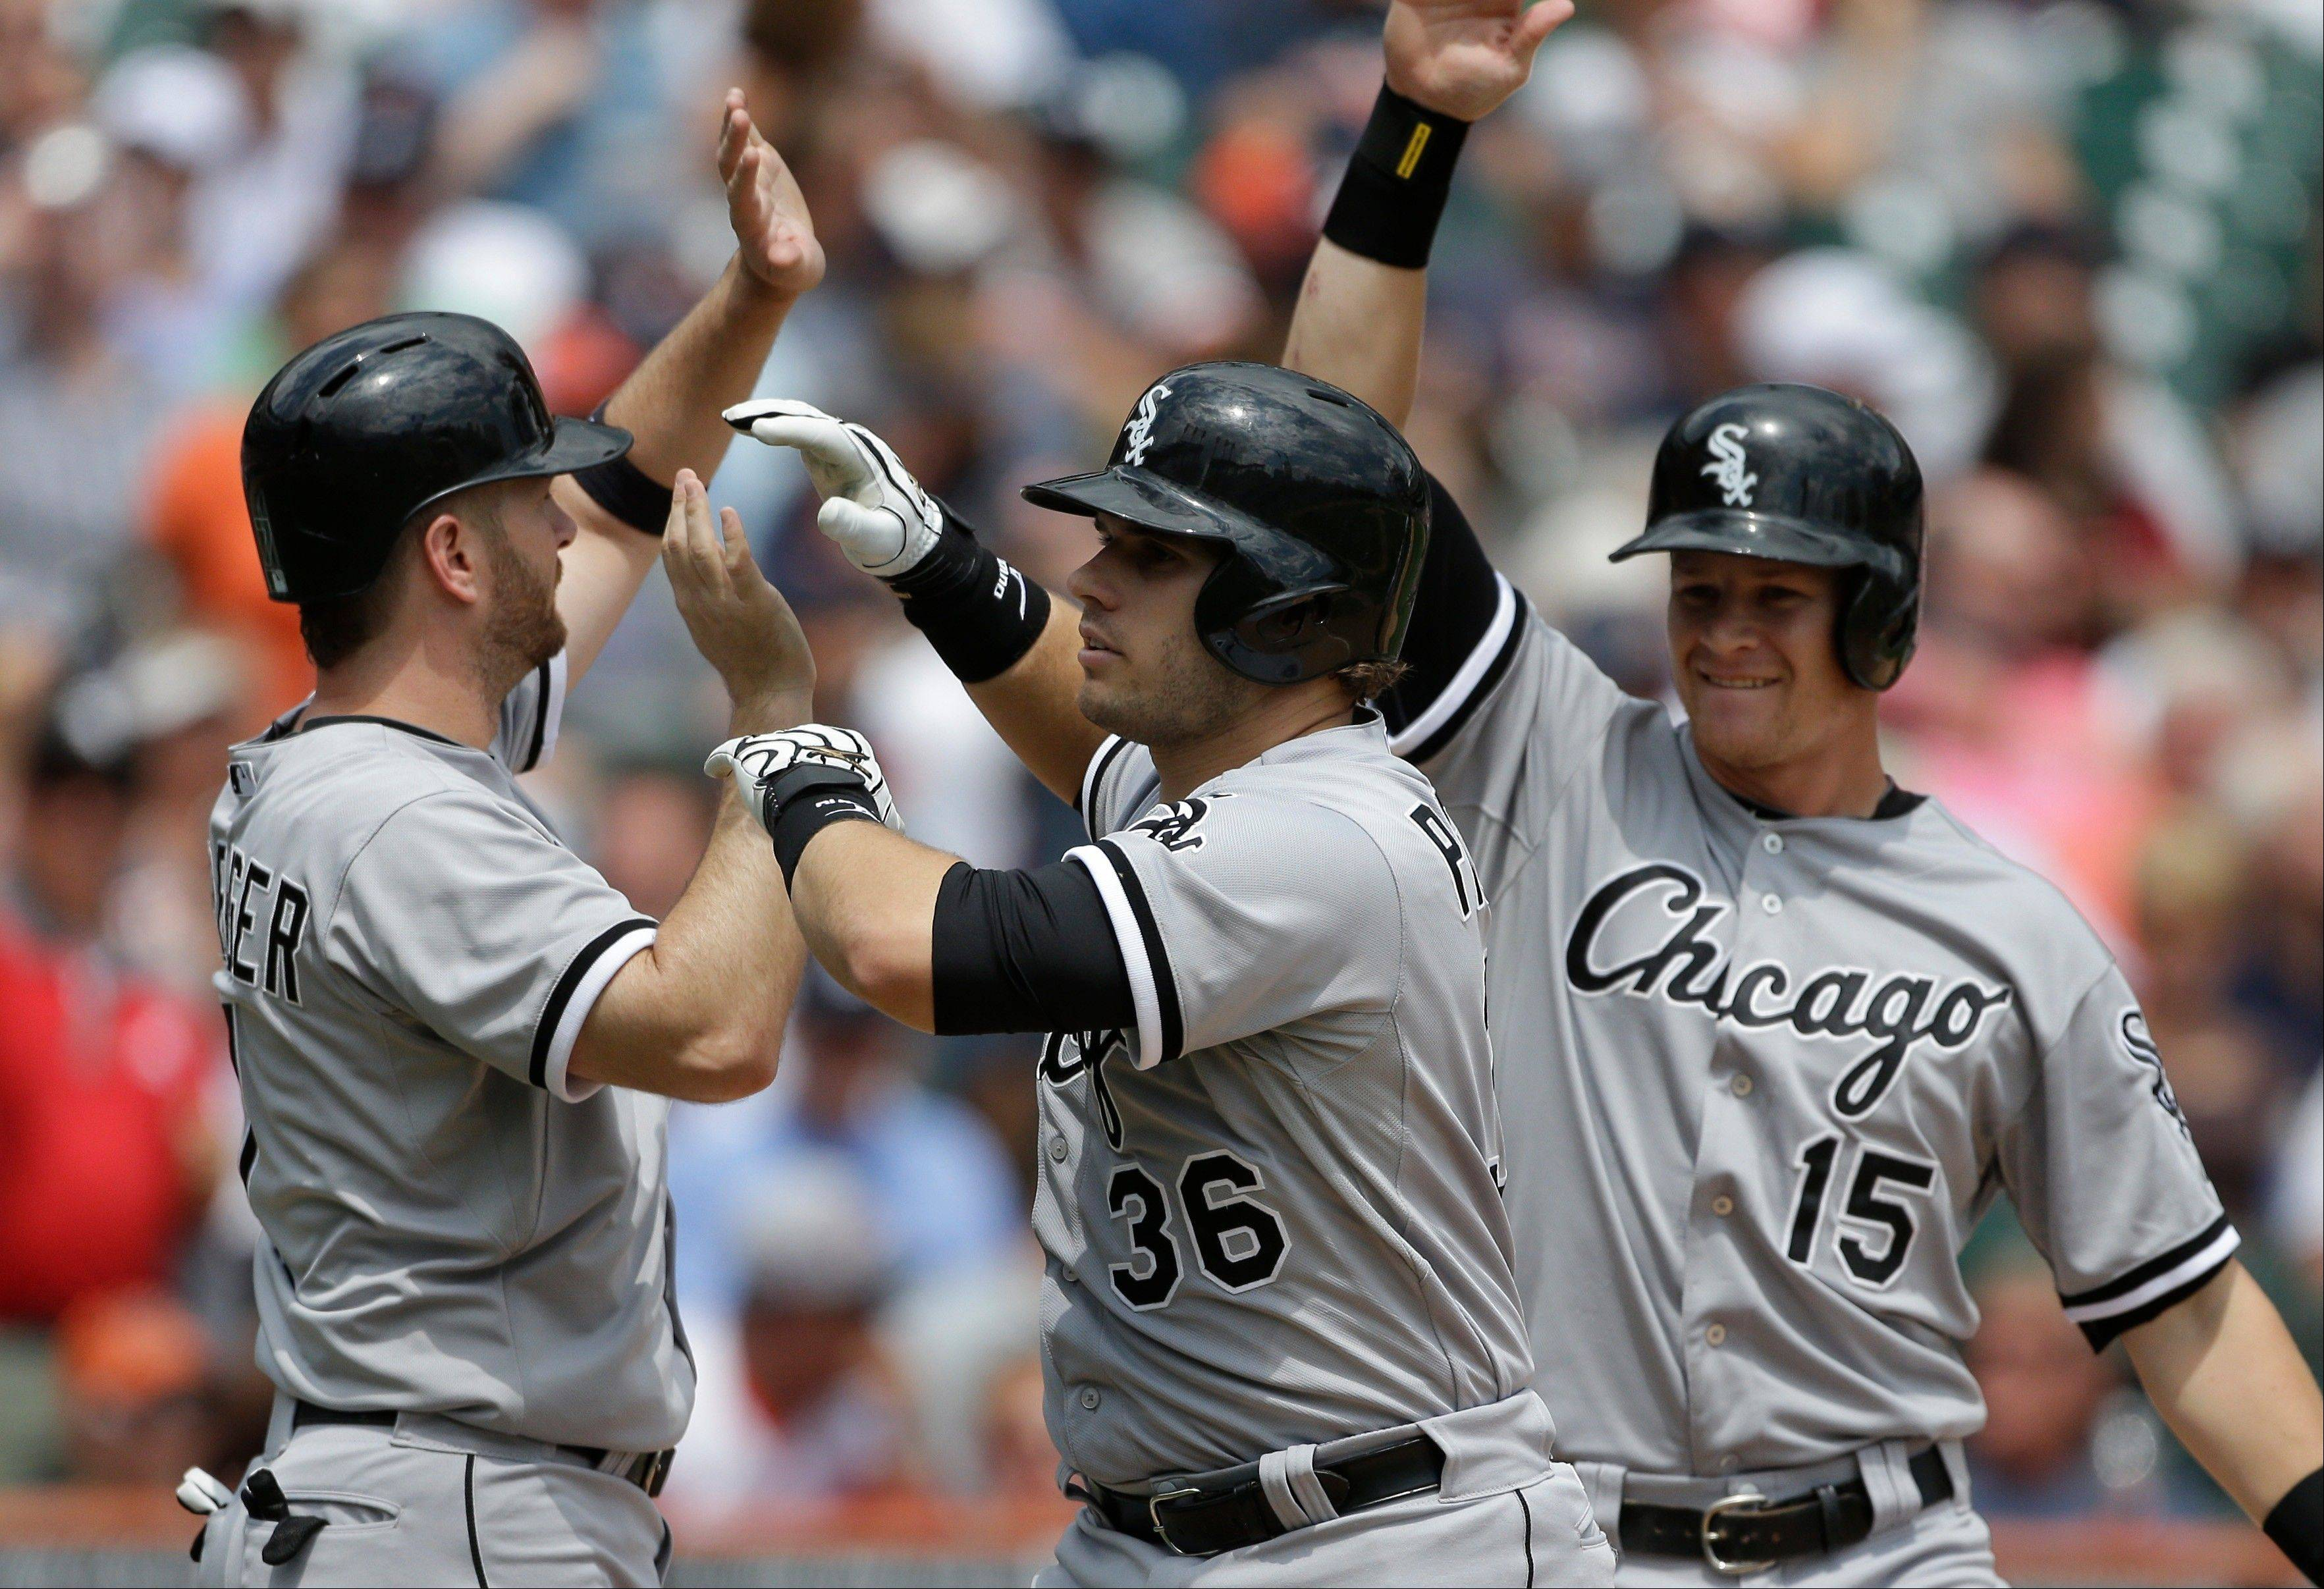 White Sox catcher Josh Phegley, (36) is congratulated by teammates Jeff Keppinger, left, and Gordon Beckham (15) after his grand slam Thursday during the sixth inning against the Detroit Tigers in Detroit.